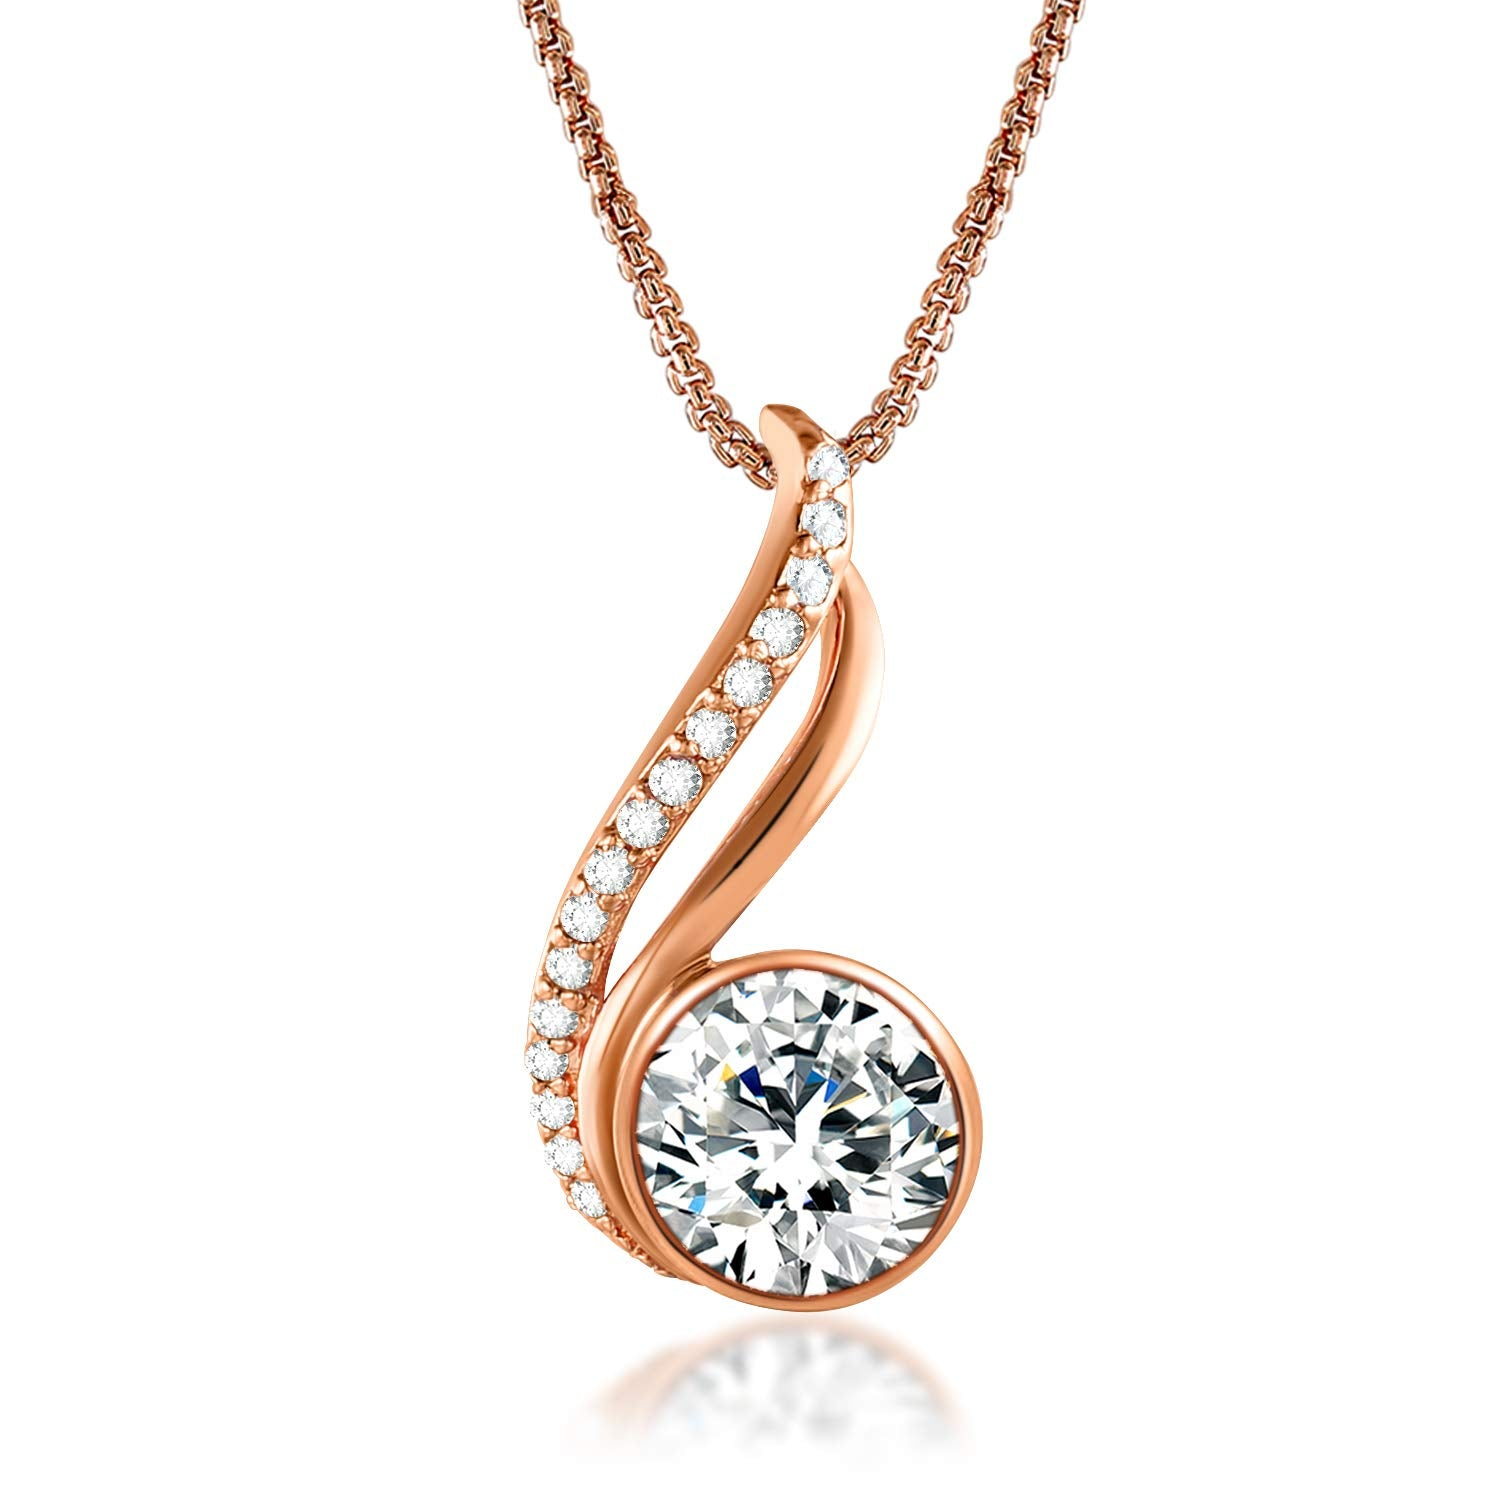 S925 Sterling Silver Rose Gold Pendant Plated Jewelry You're in My Heart Cross Necklace for Women Girls